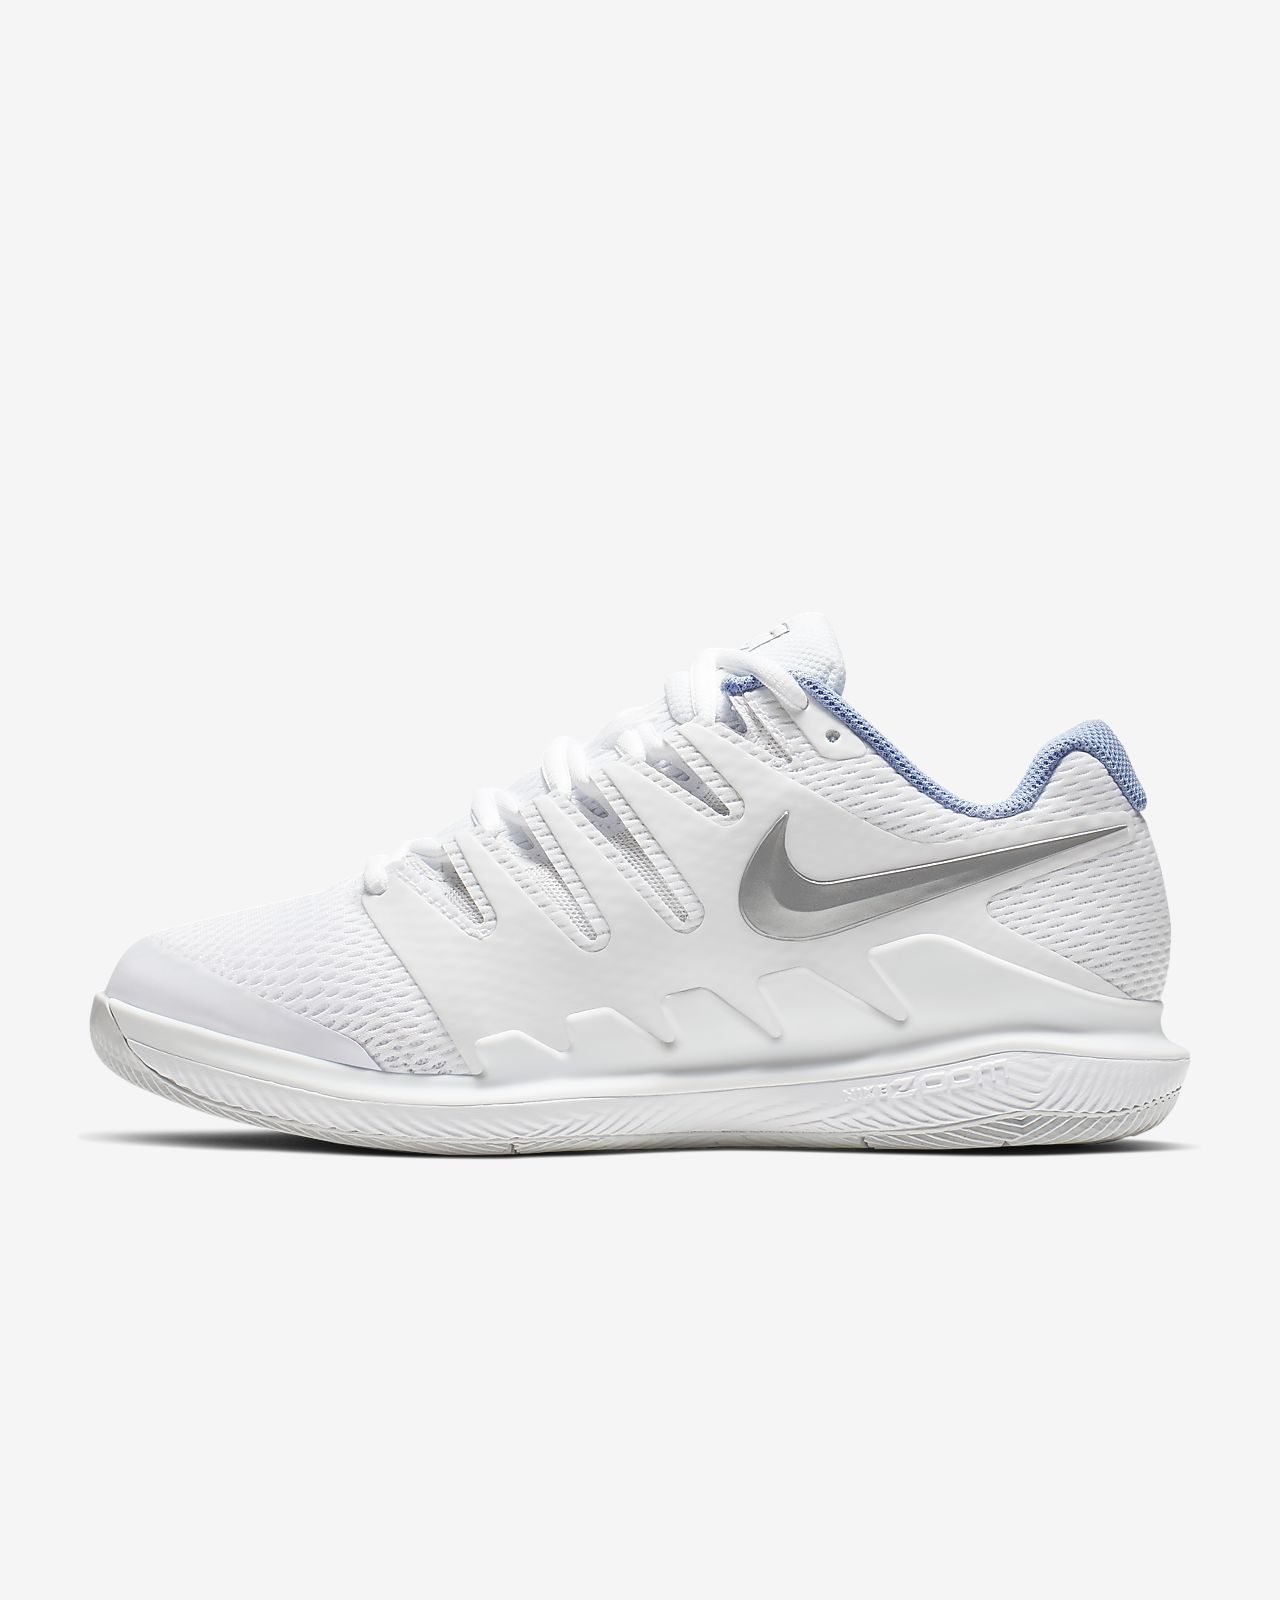 new concept 6f41e cf6ec ... NikeCourt Air Zoom Vapor X Women s Hard Court Tennis Shoe (Wide)